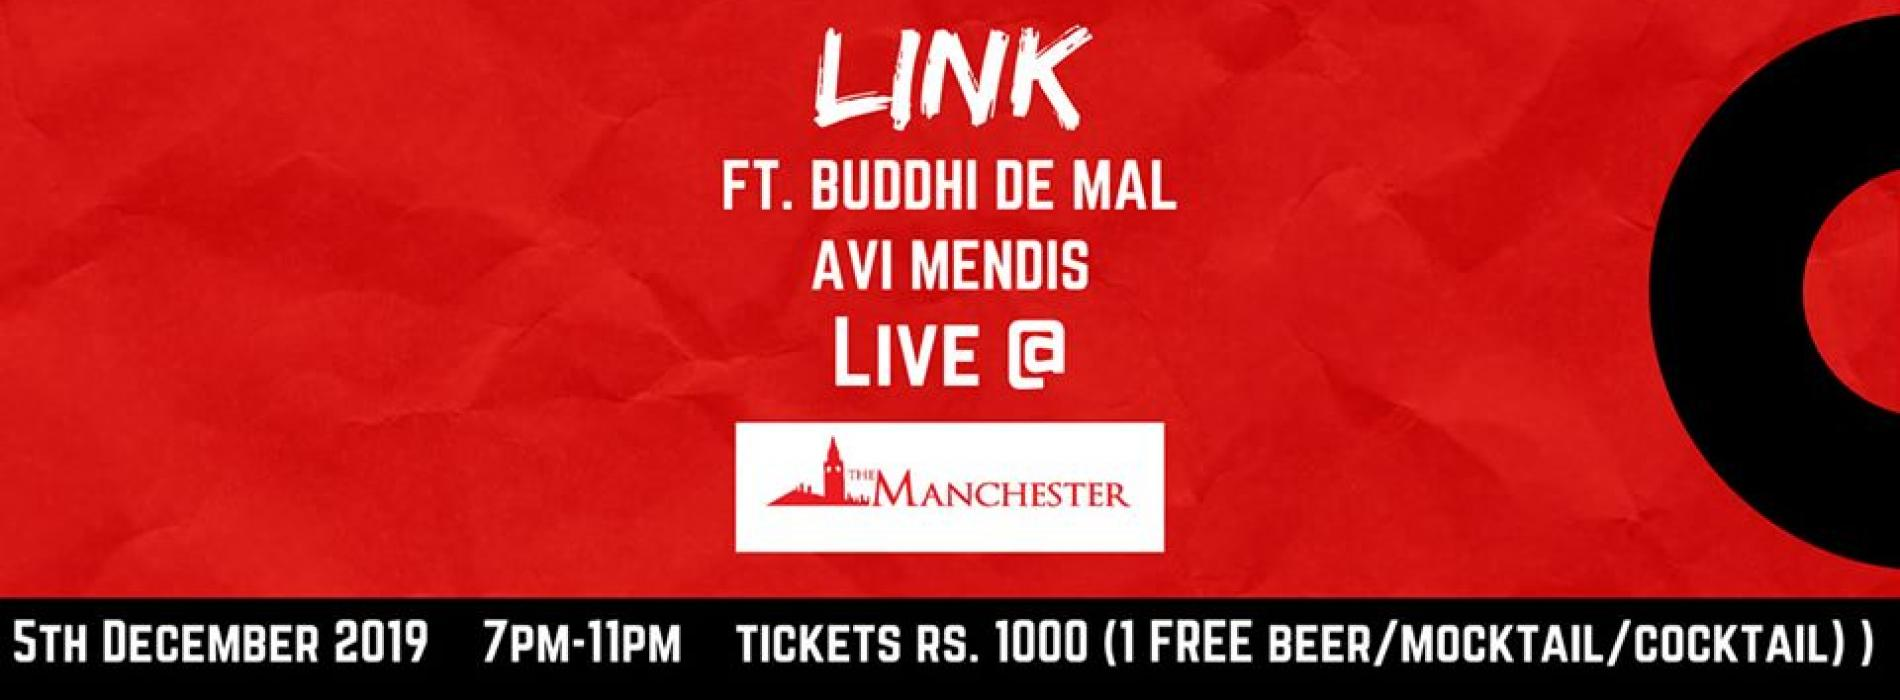 LINK Live At The Manchester